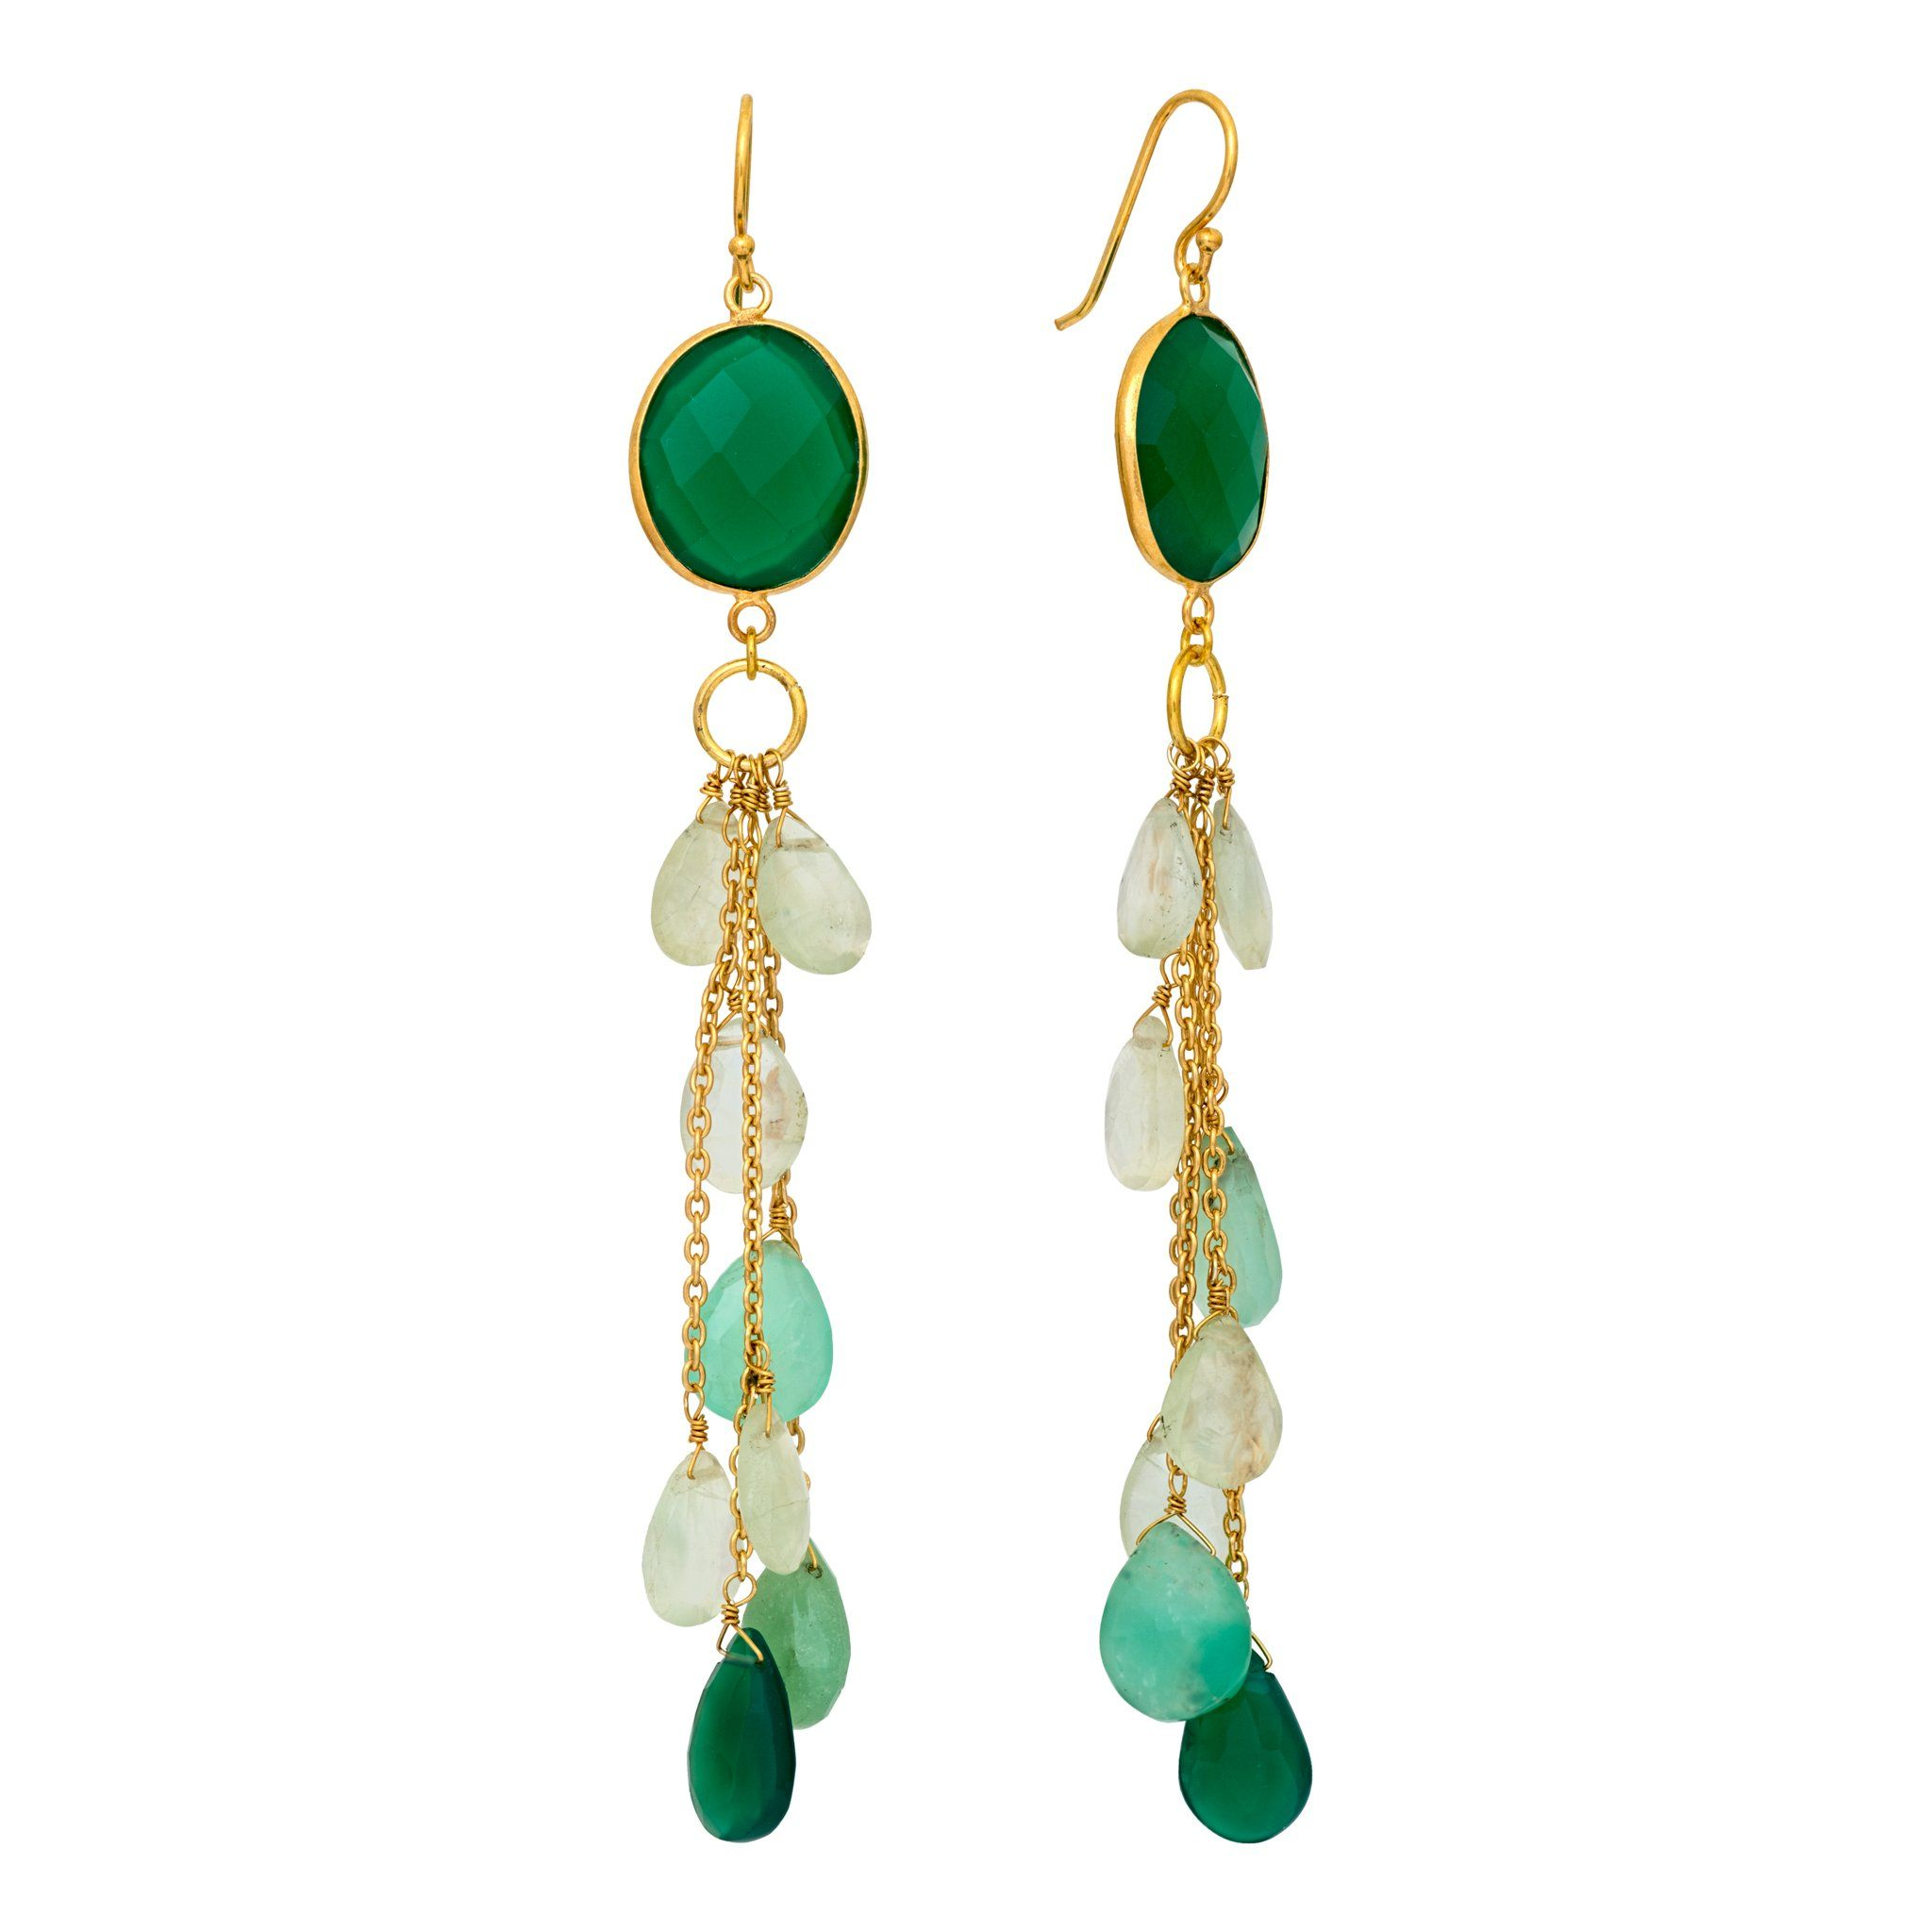 LUZ green onyx cluster long earrings